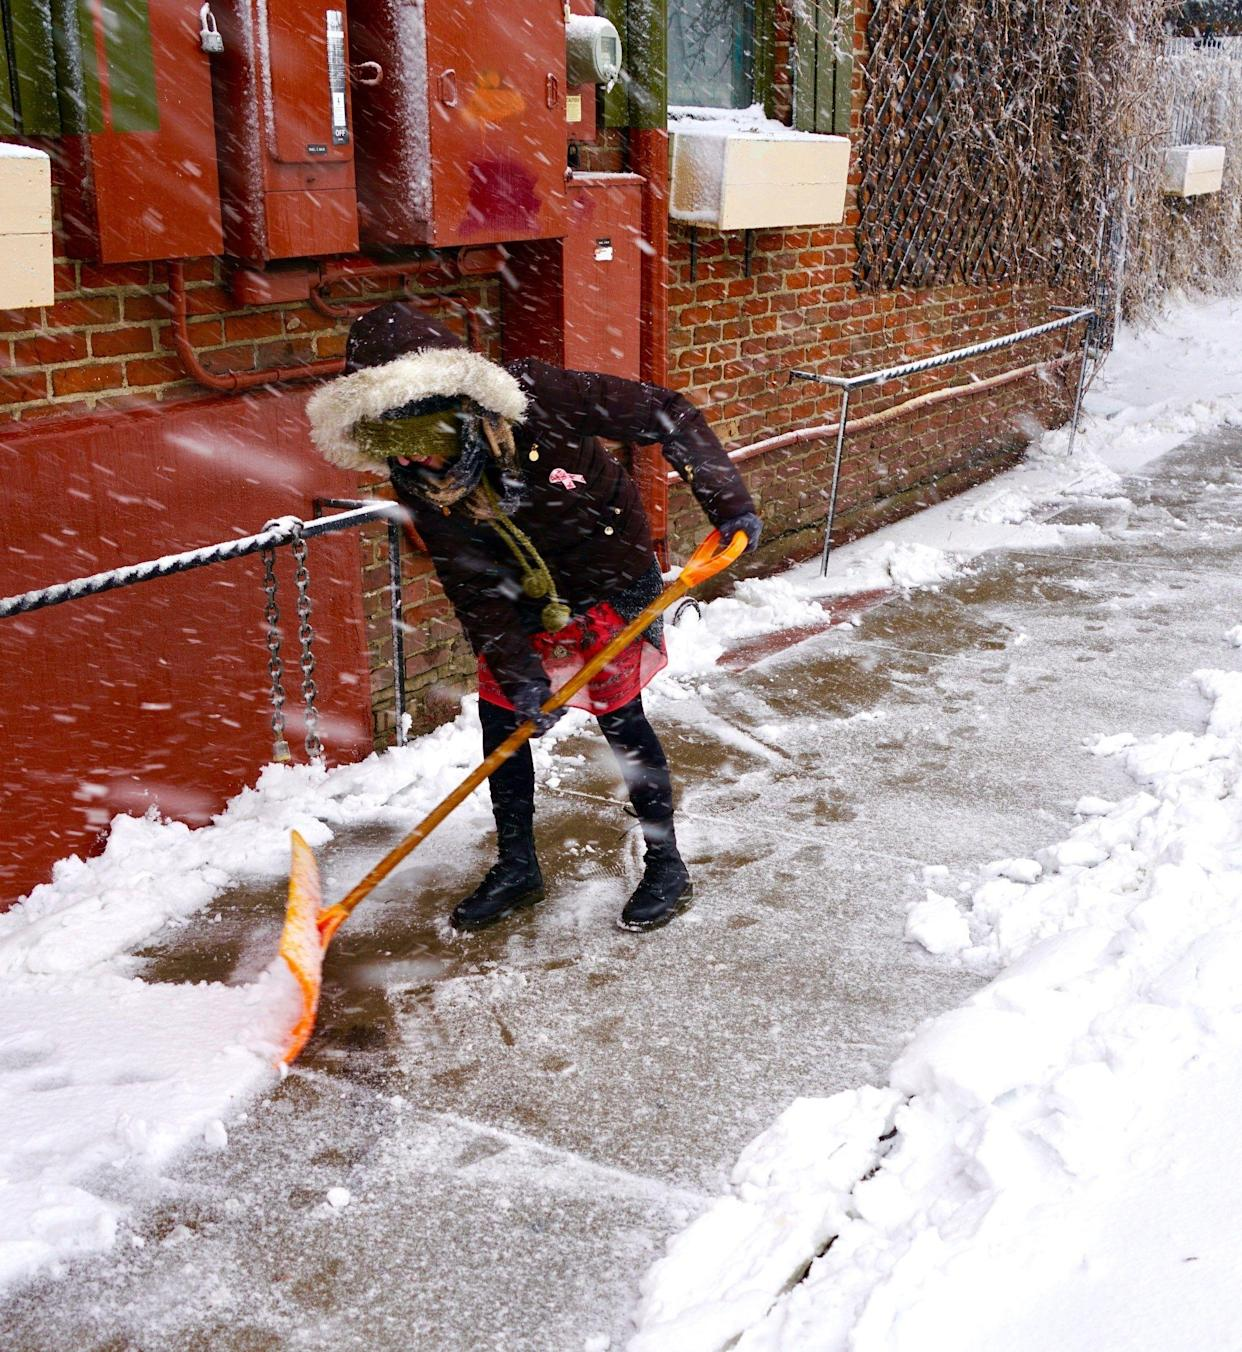 """Head bent against the driving snow, Rindi Gray, 48, shovels the sidewalk outside Denver's """"My Brothers Bar,"""" during the March 13, 2019, blizzard."""